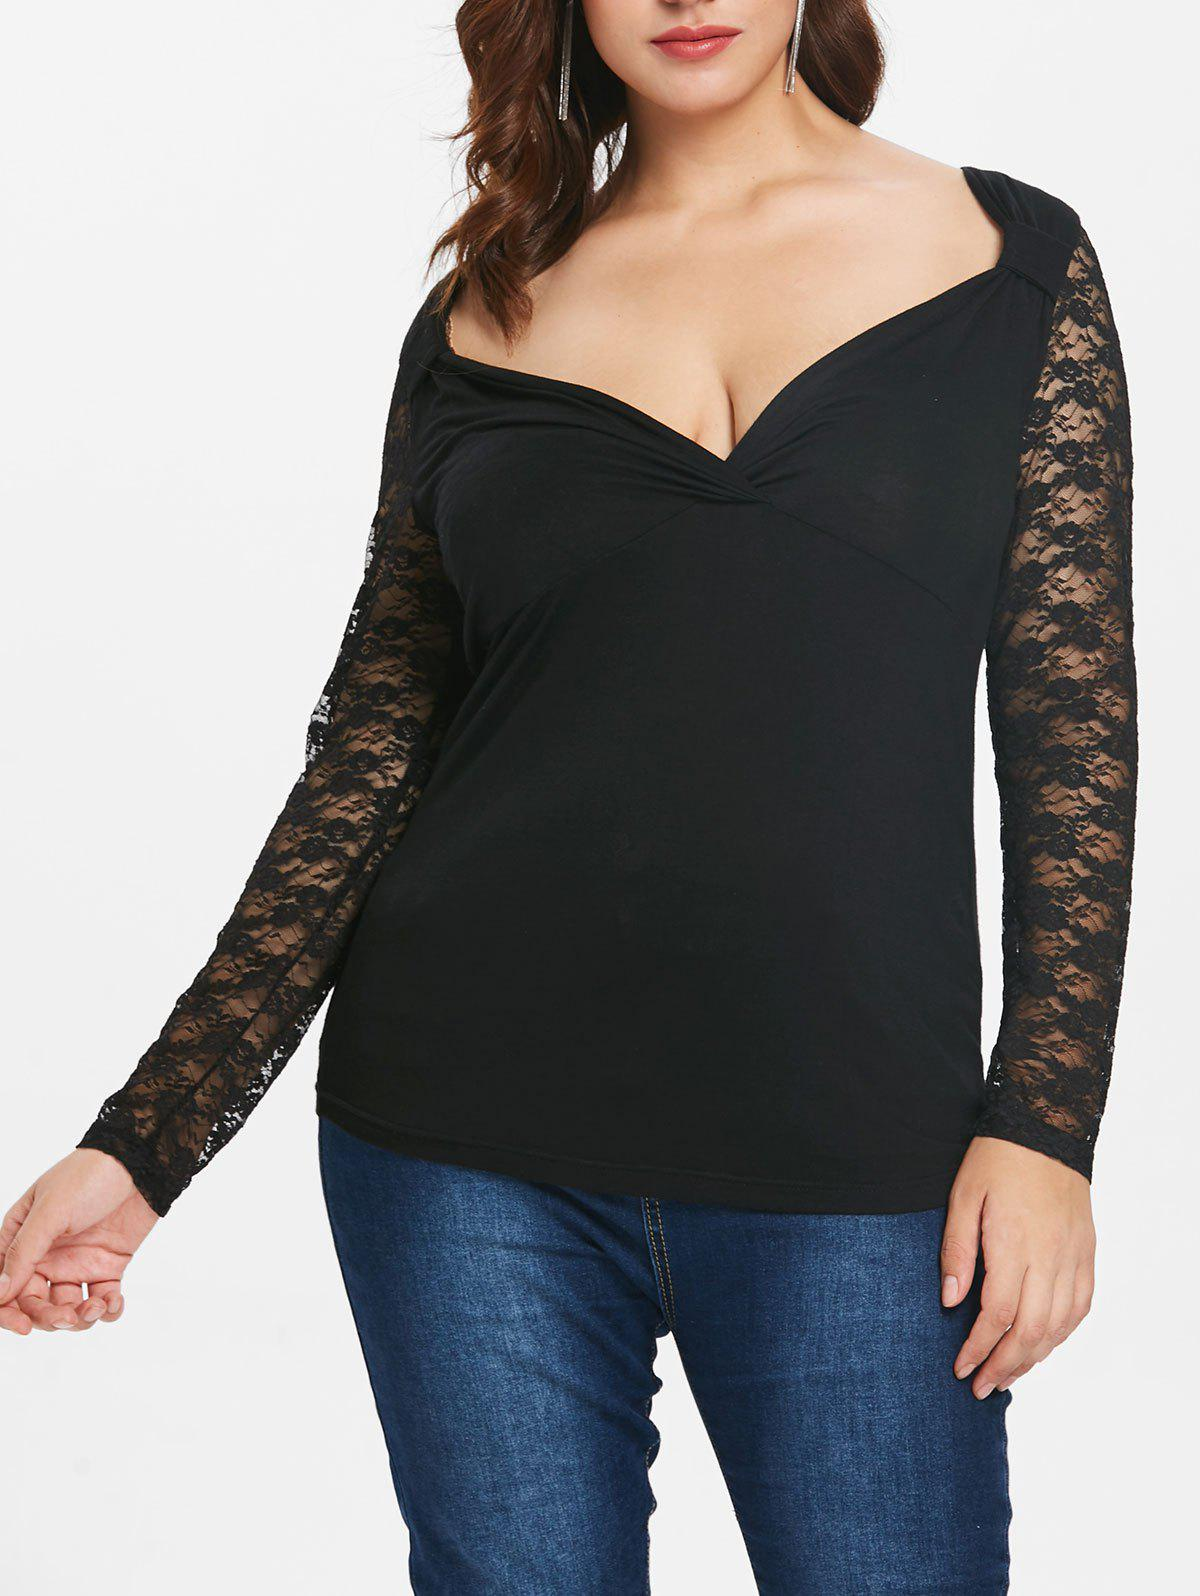 Plus Size Surplice Top with Lace Insert - BLACK 4X